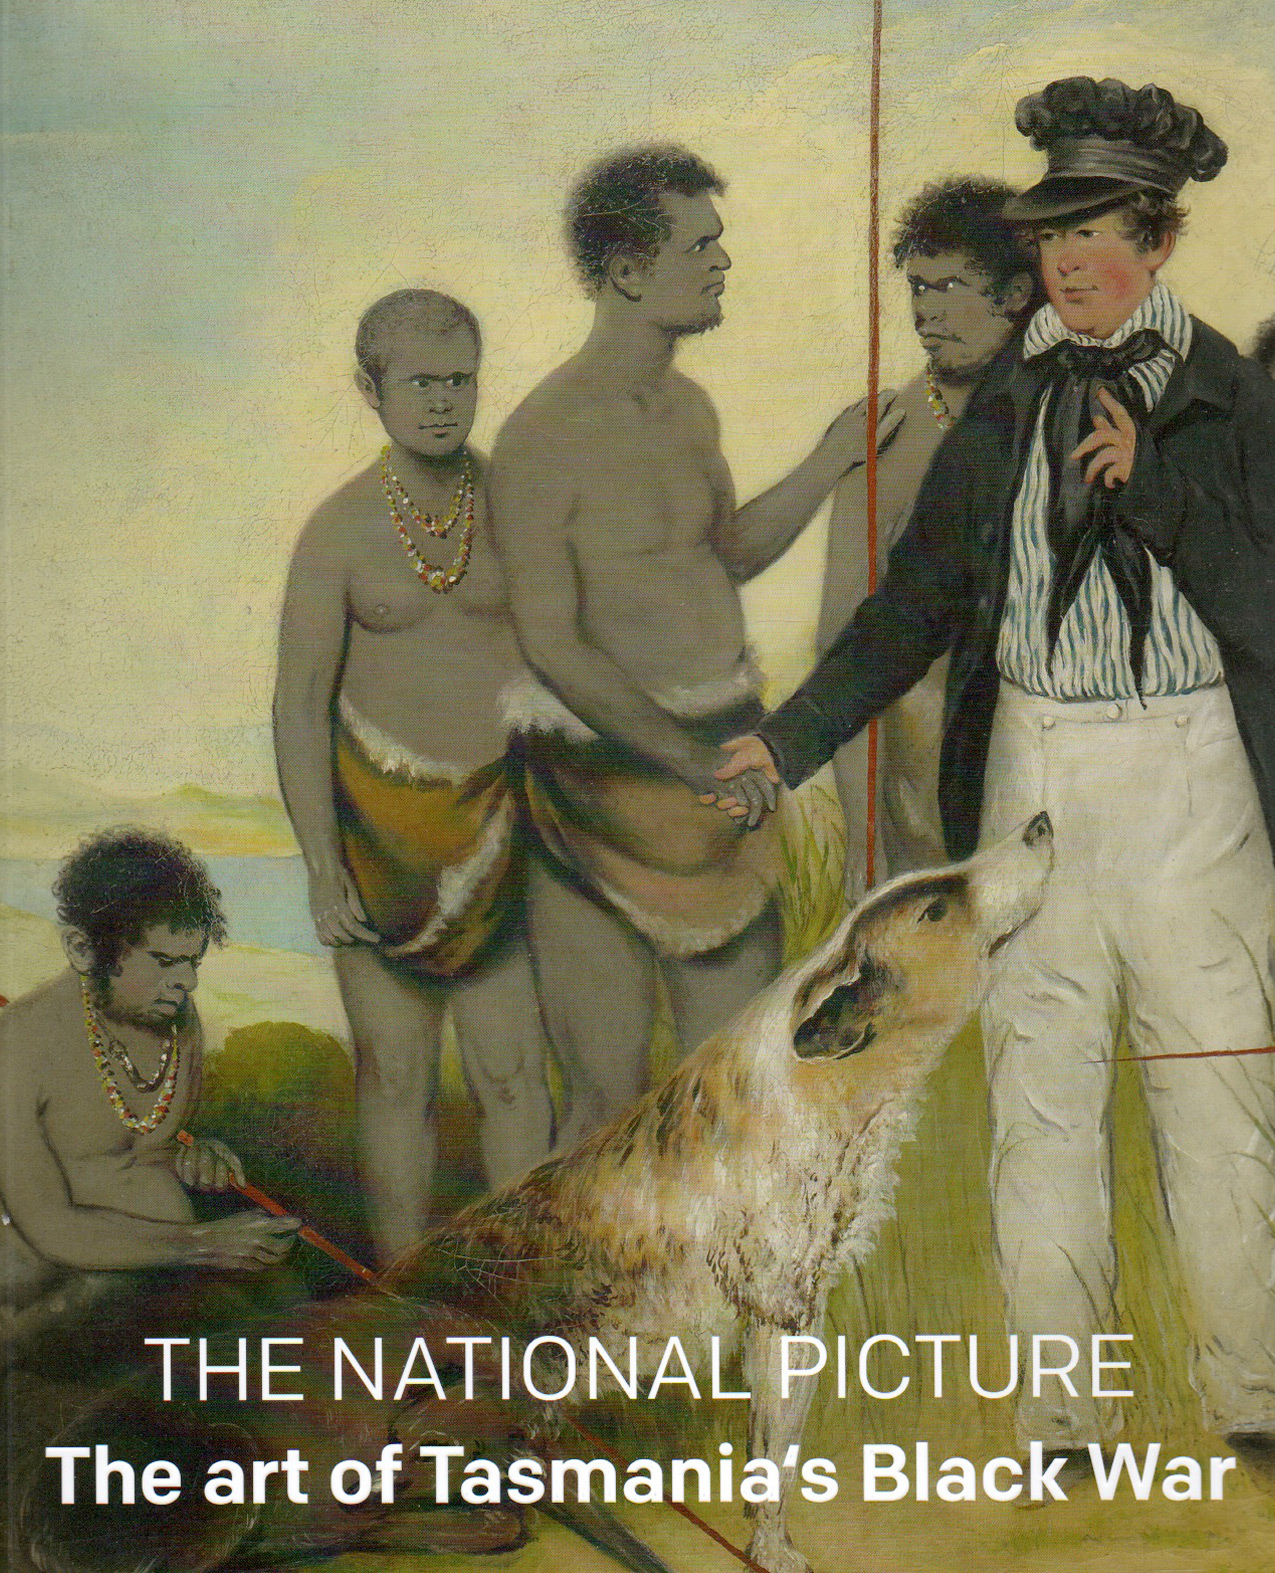 The National Picture